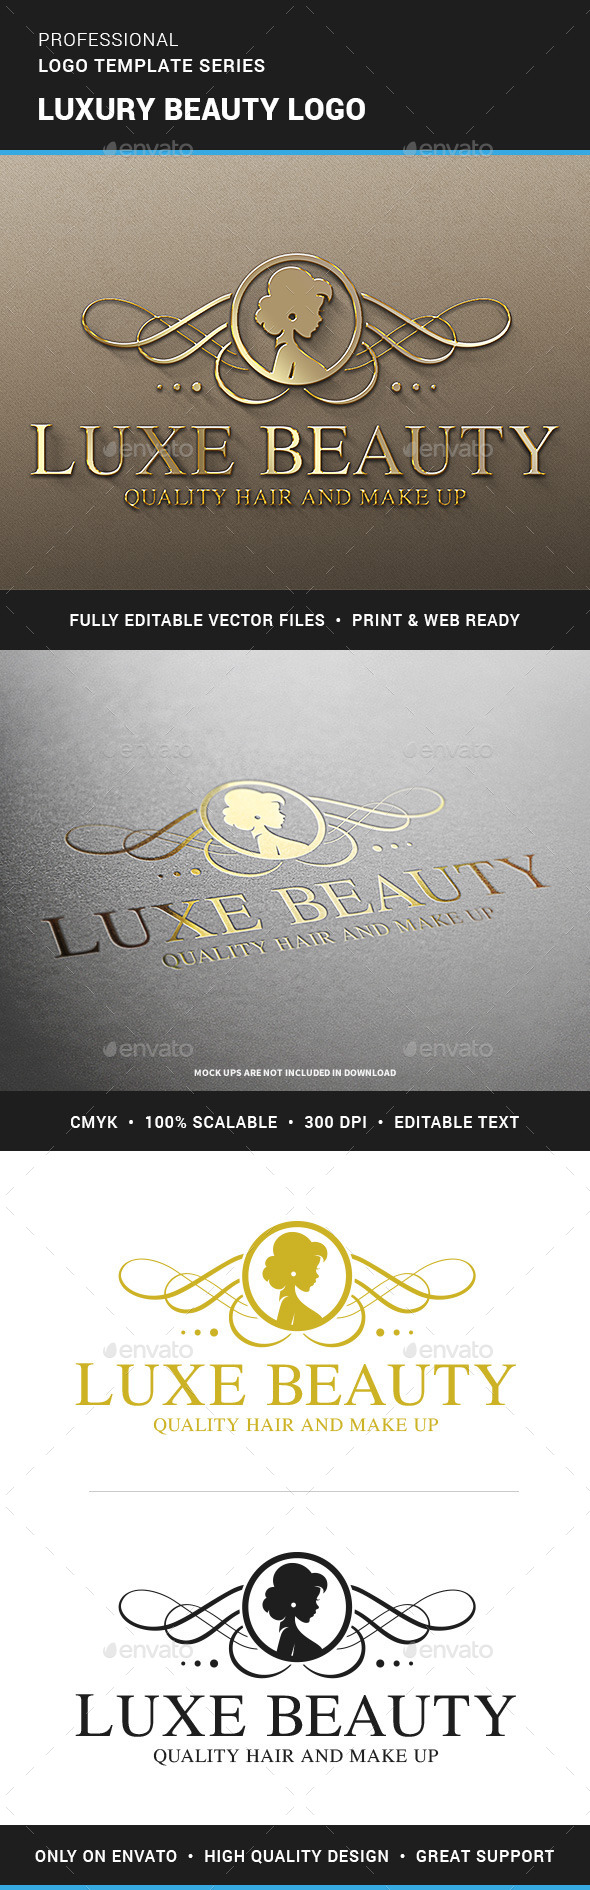 Luxury Beauty Logo Template